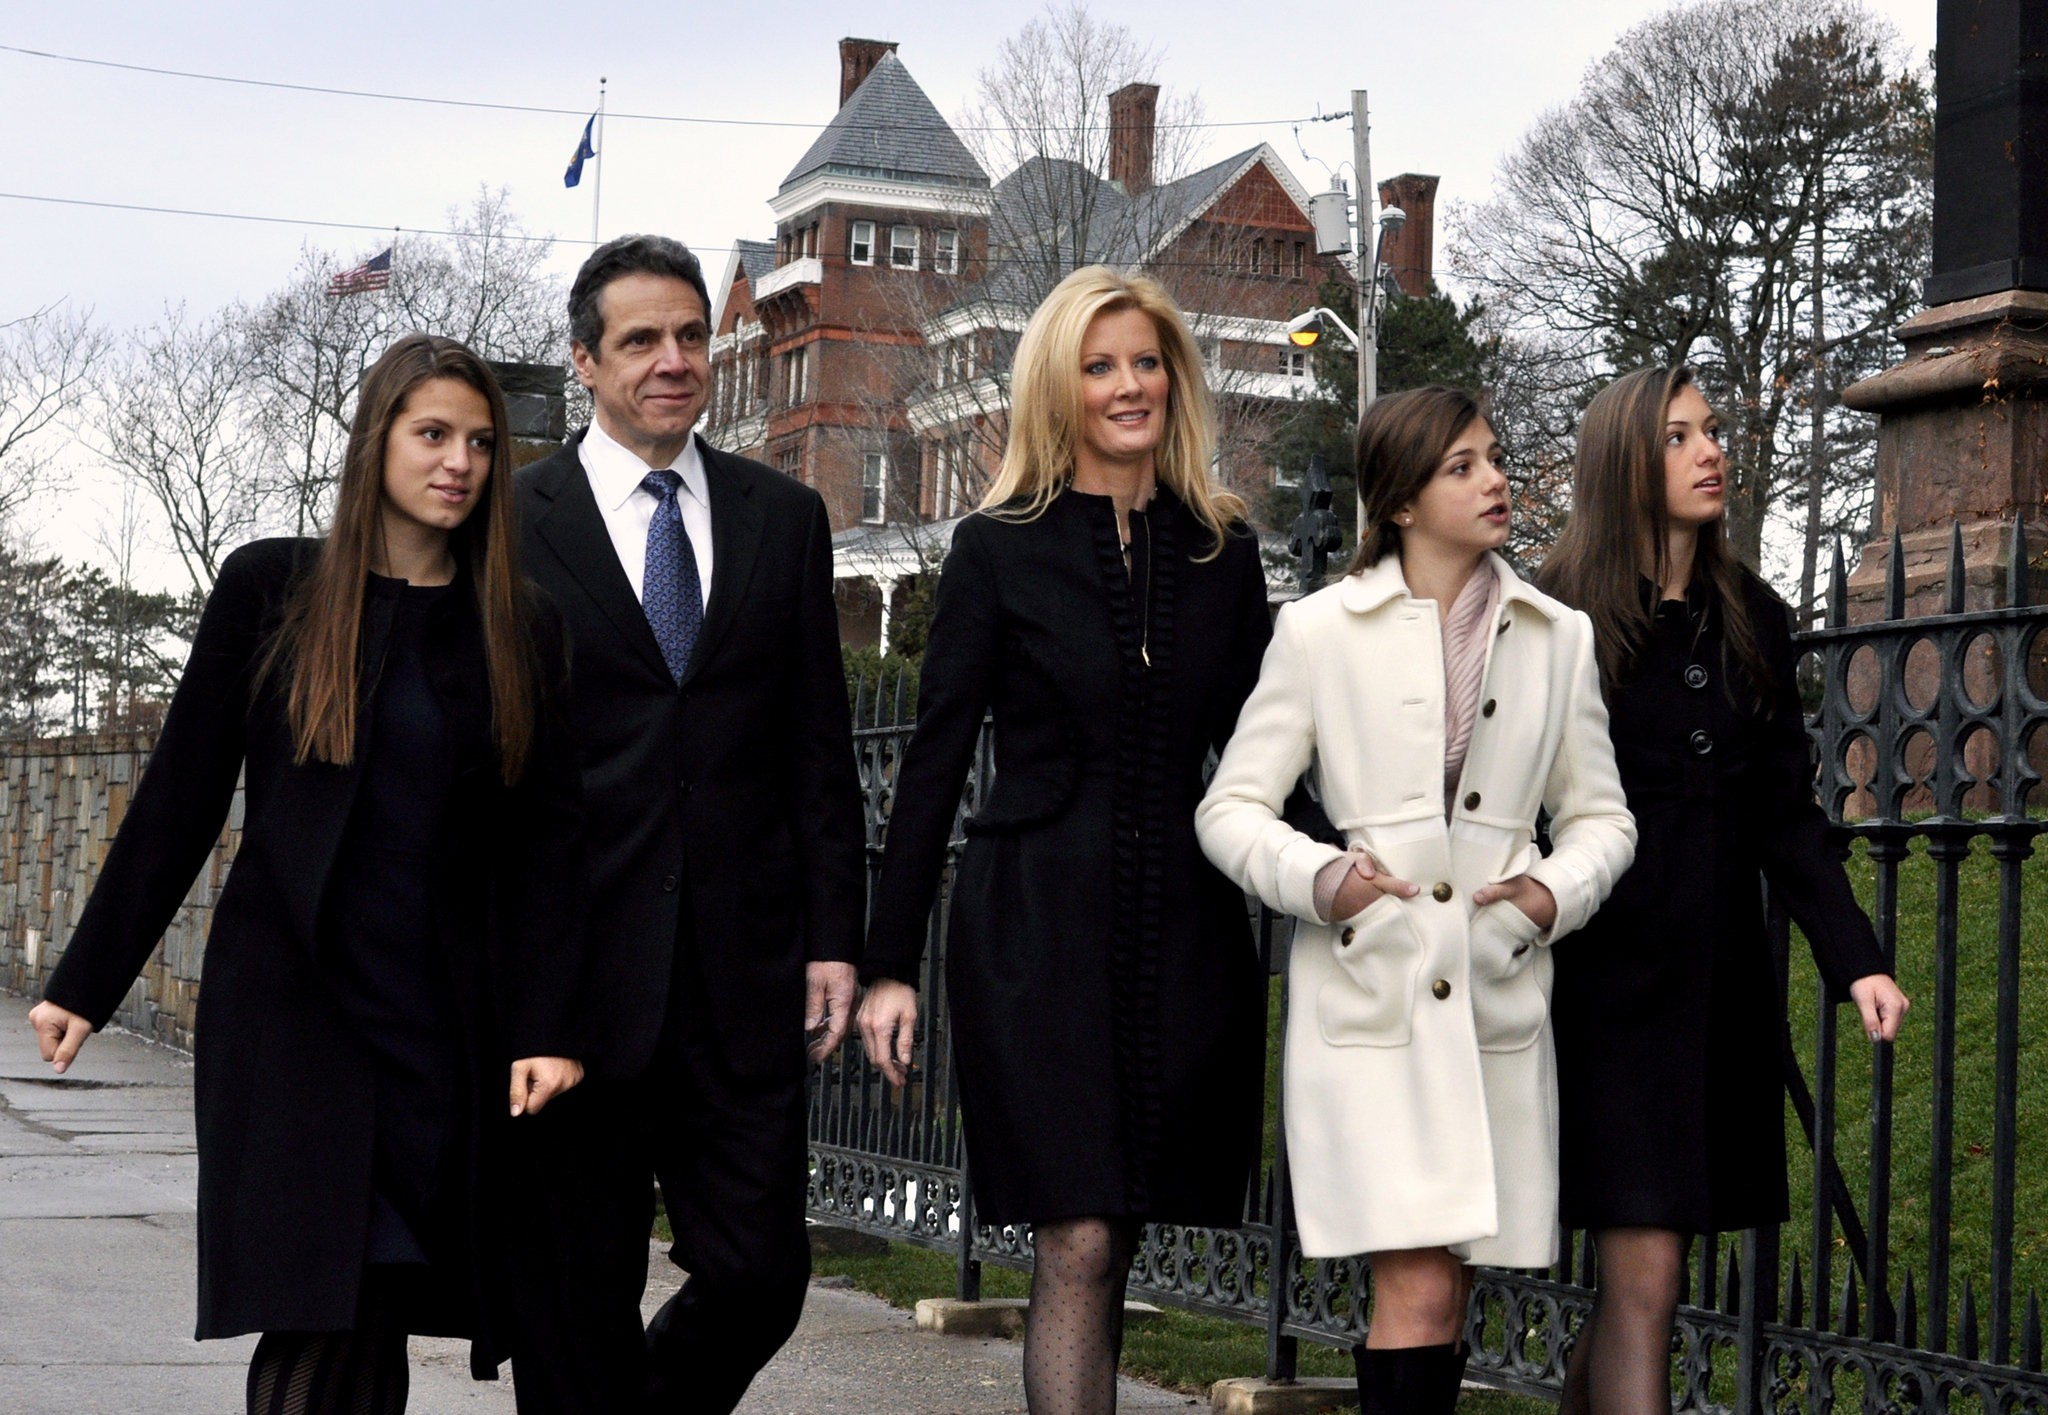 Gov Cuomo S Daughter 17 Hospitalized After Being Found Unconscious Reports Syracuse Com